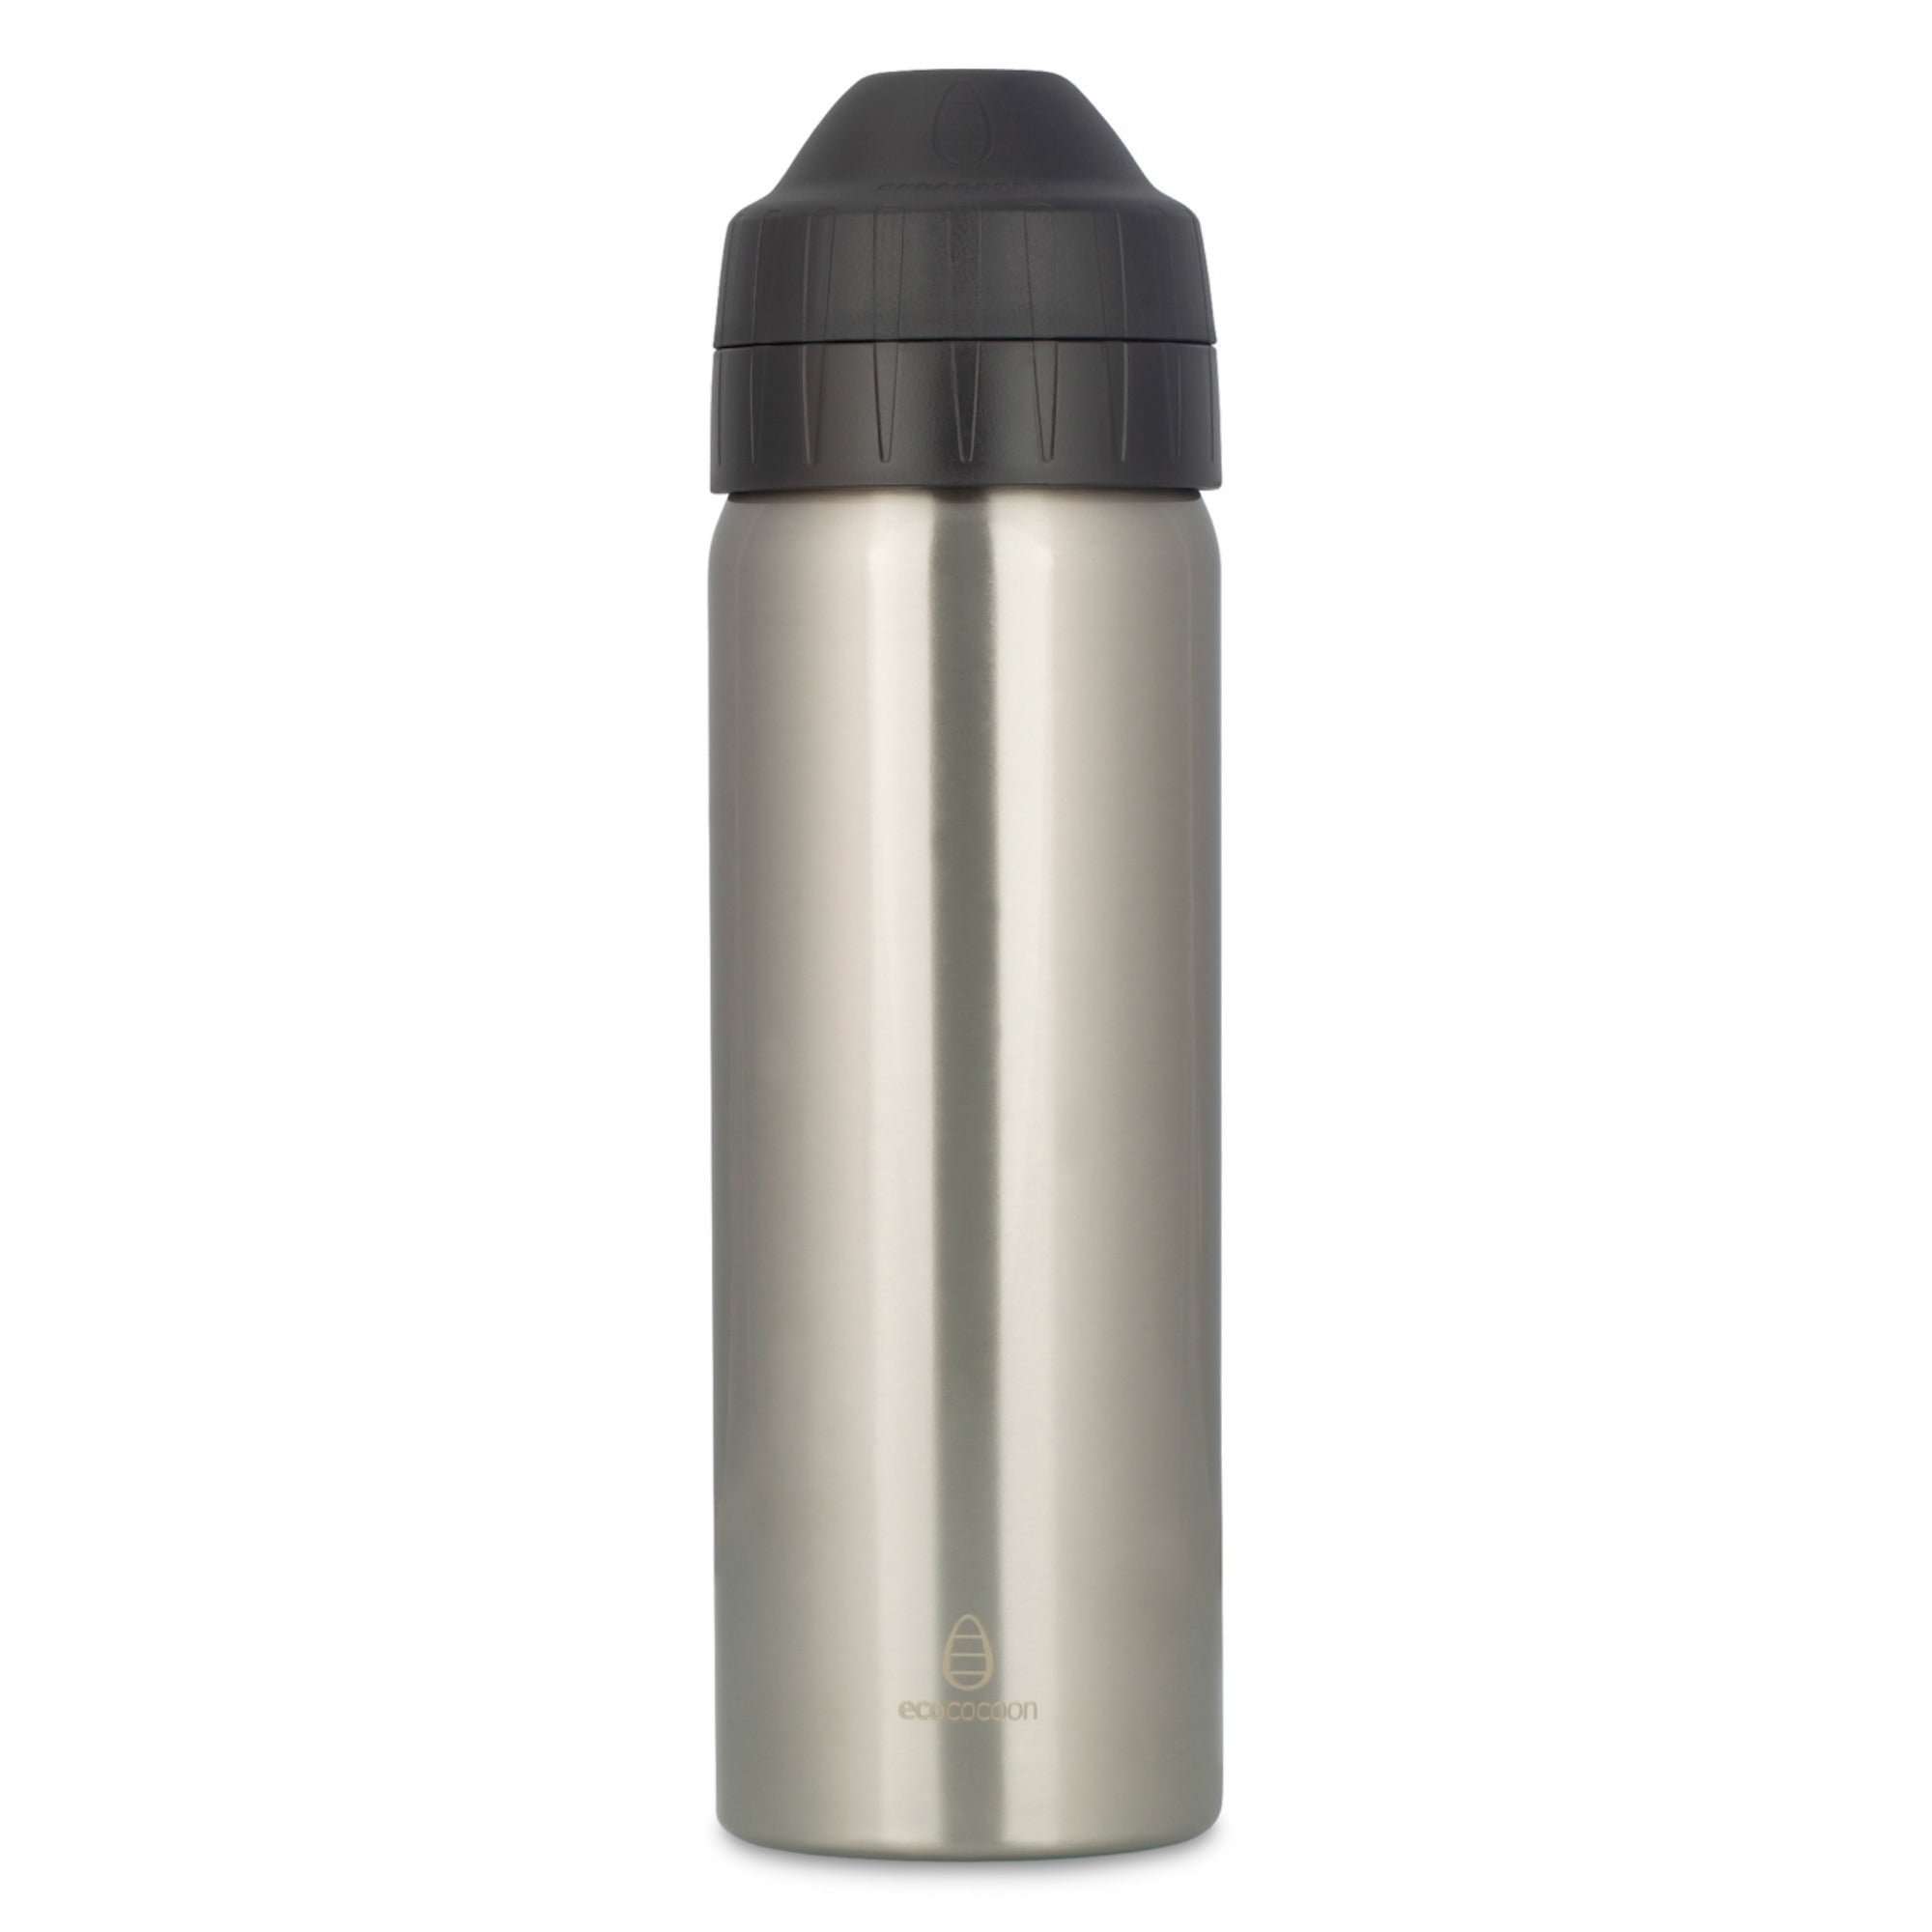 600ml Ecococoon Insulated Drink Bottle. Brushed Stainless Steel. Silver.